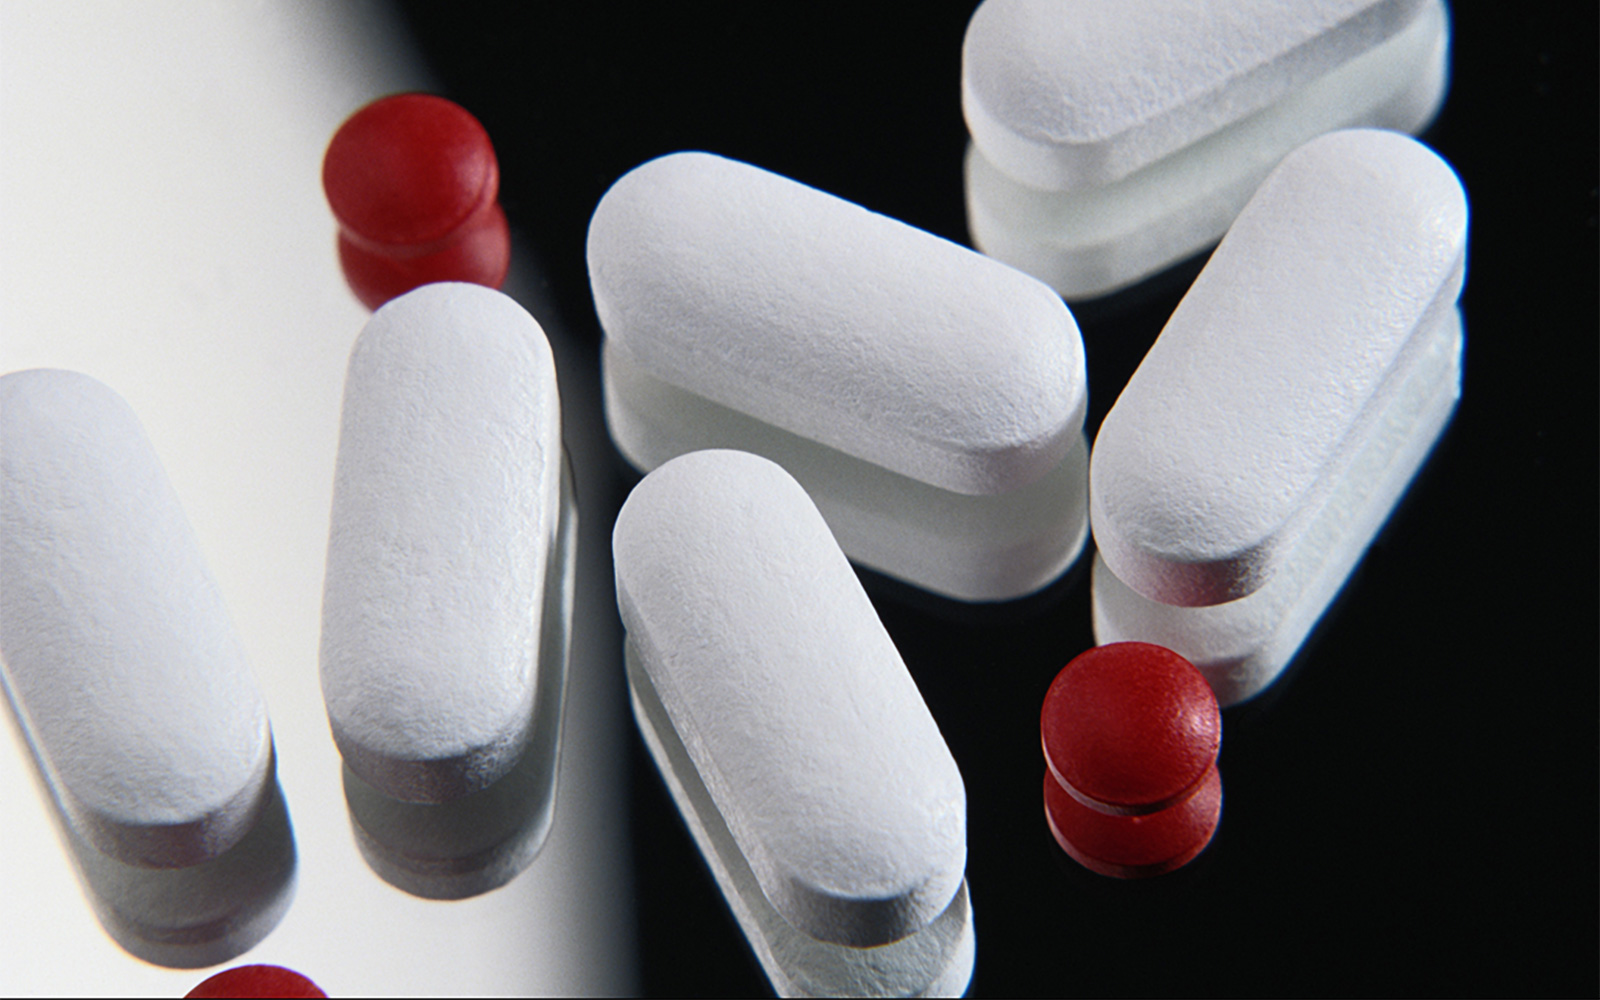 Close-up of FDA-regulated medication pills on a mirror